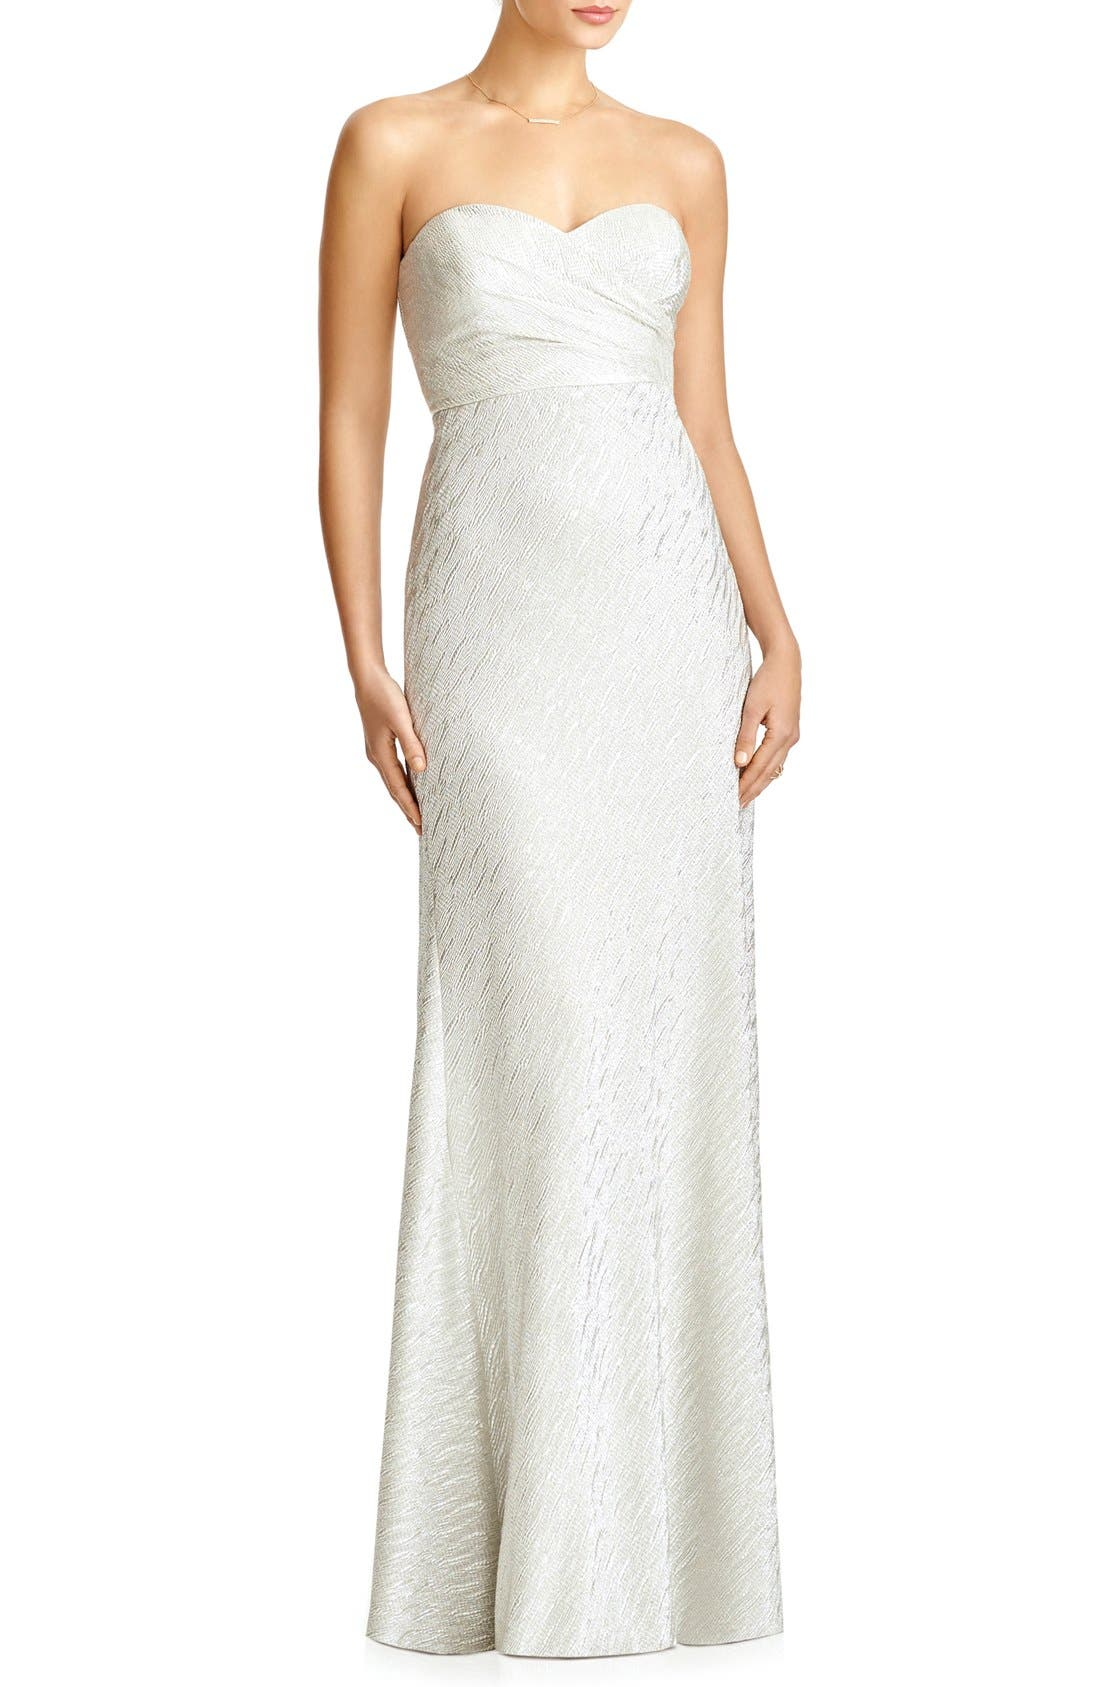 'Soho' Metallic Strapless Empire Waist Gown,                         Main,                         color, CHAMPAGNE SILVER